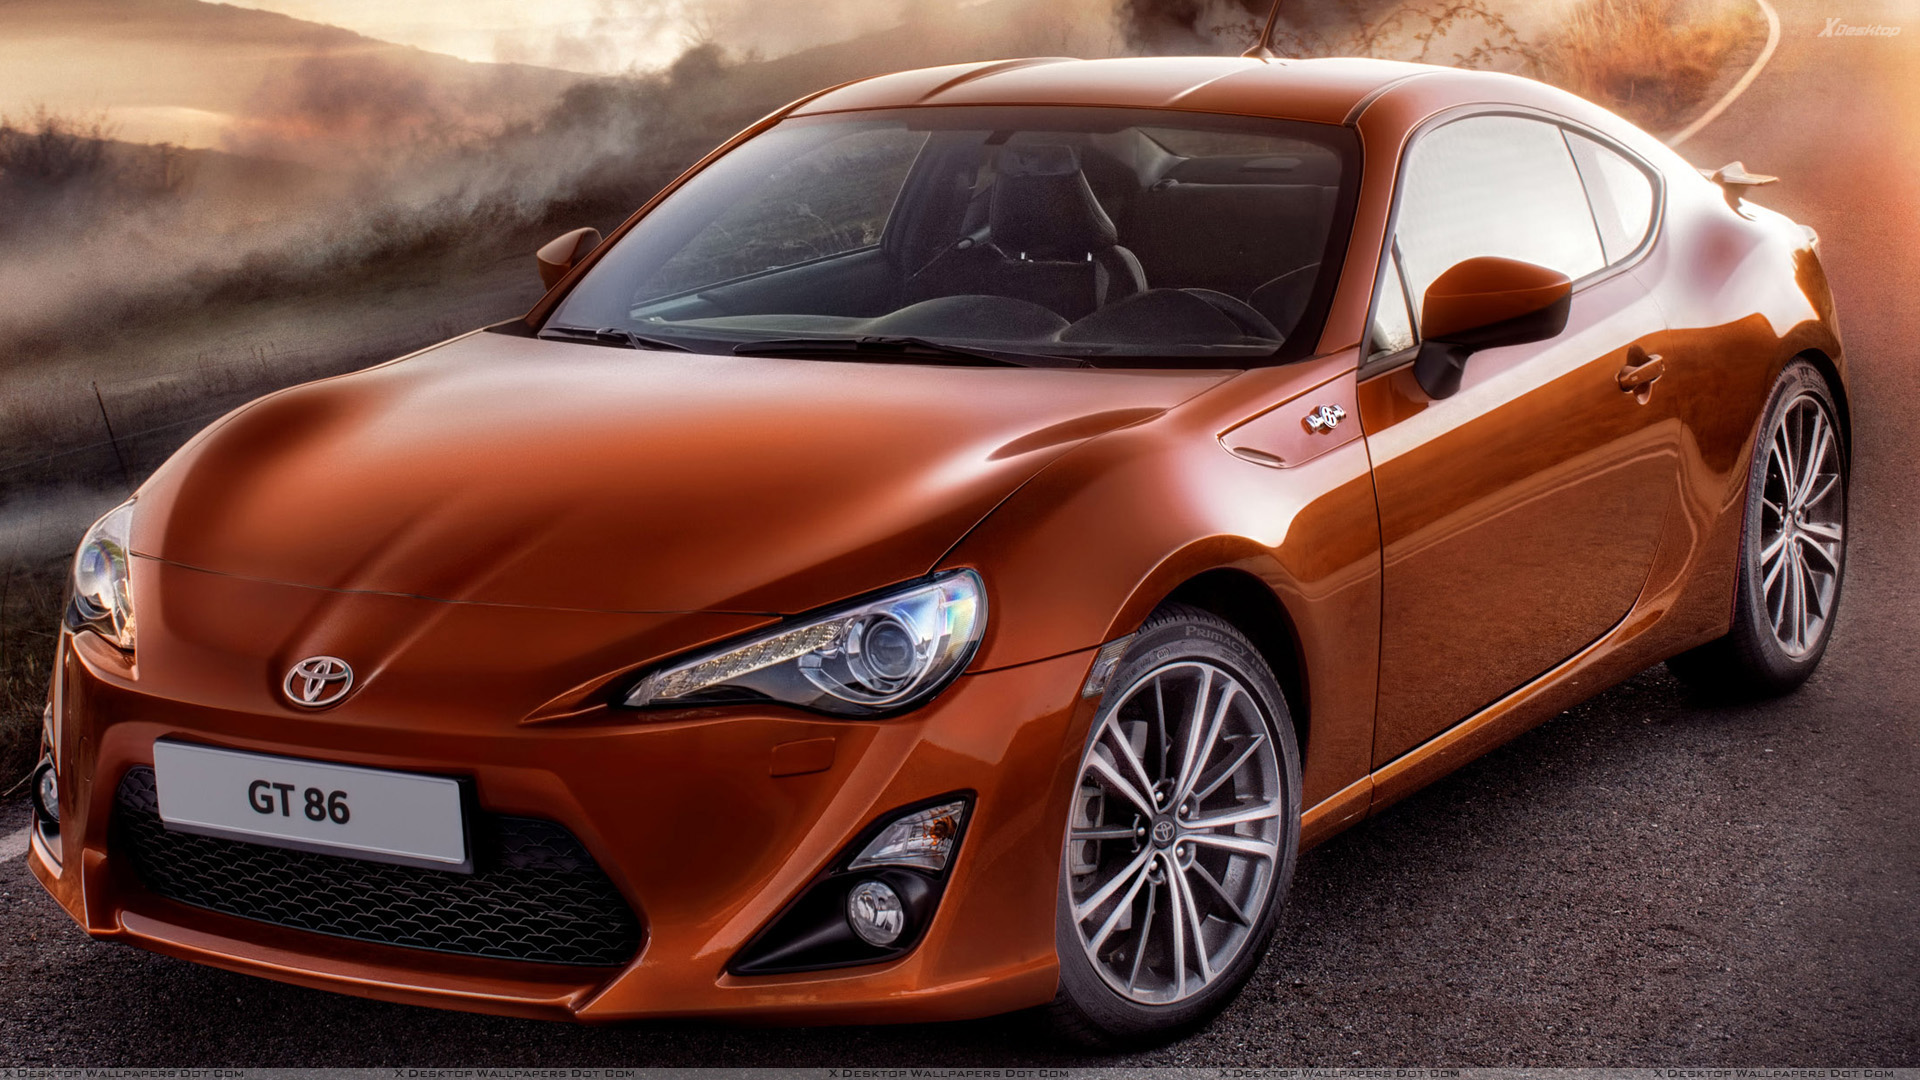 You Are Viewing Wallpaper - 2014 Toyota 86 Mt , HD Wallpaper & Backgrounds